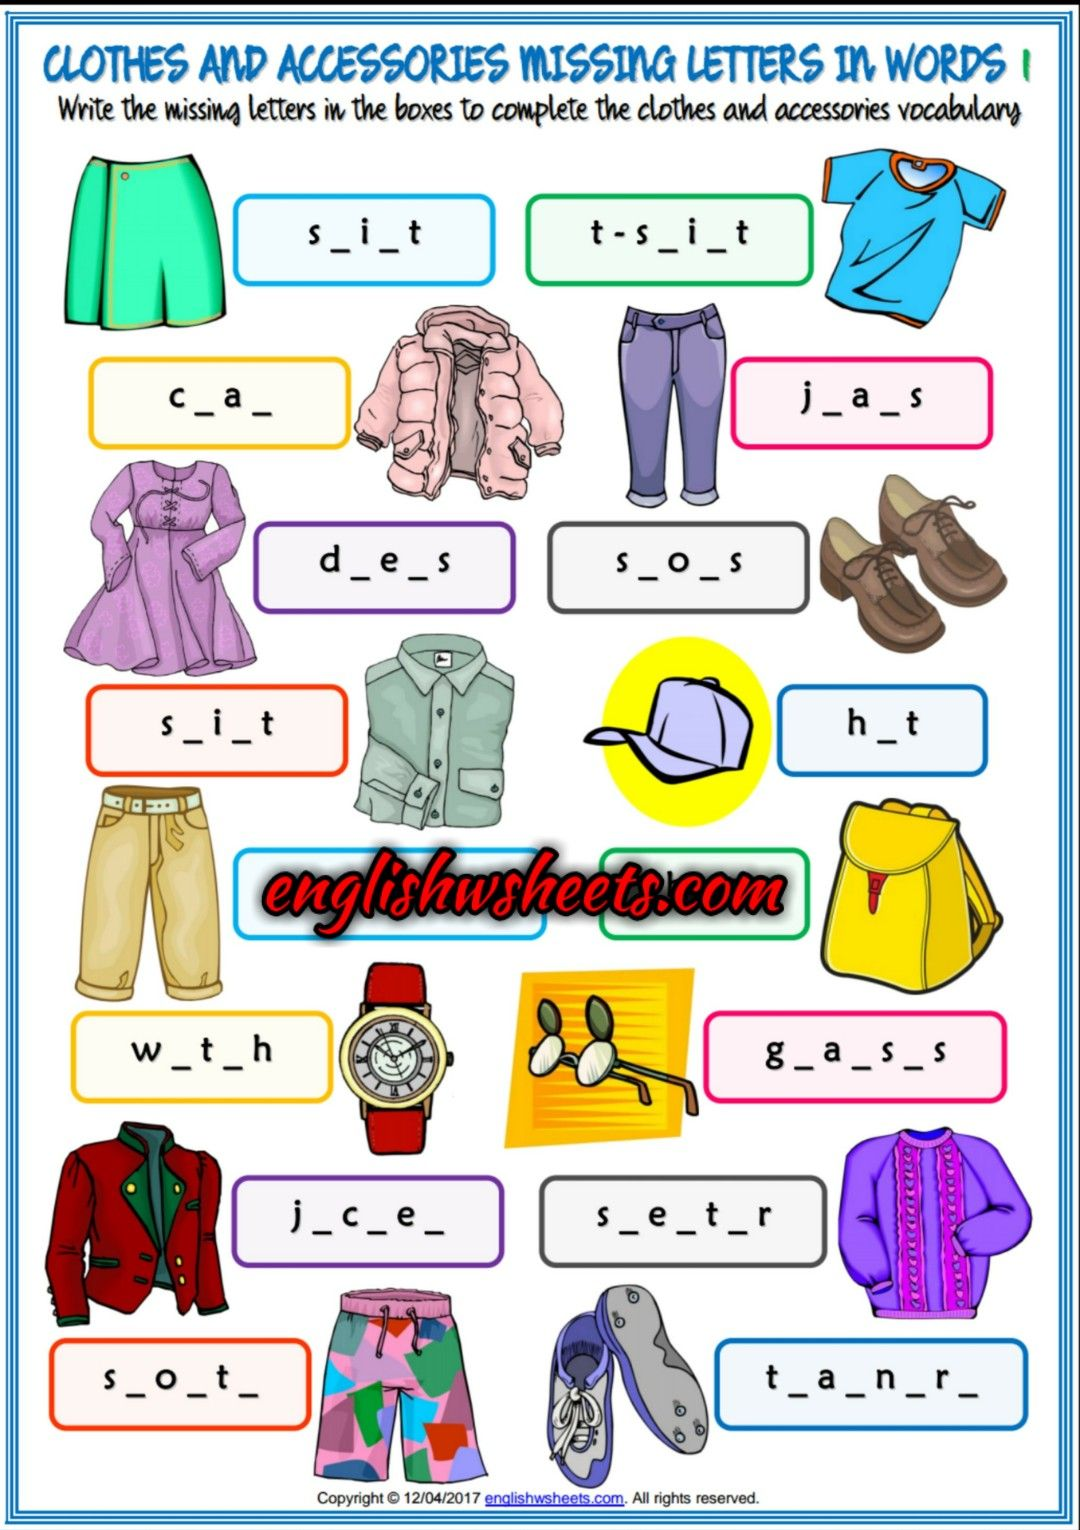 Clothes And Accessories Esl Printable Missing Letters In Words Worksheets For Kids